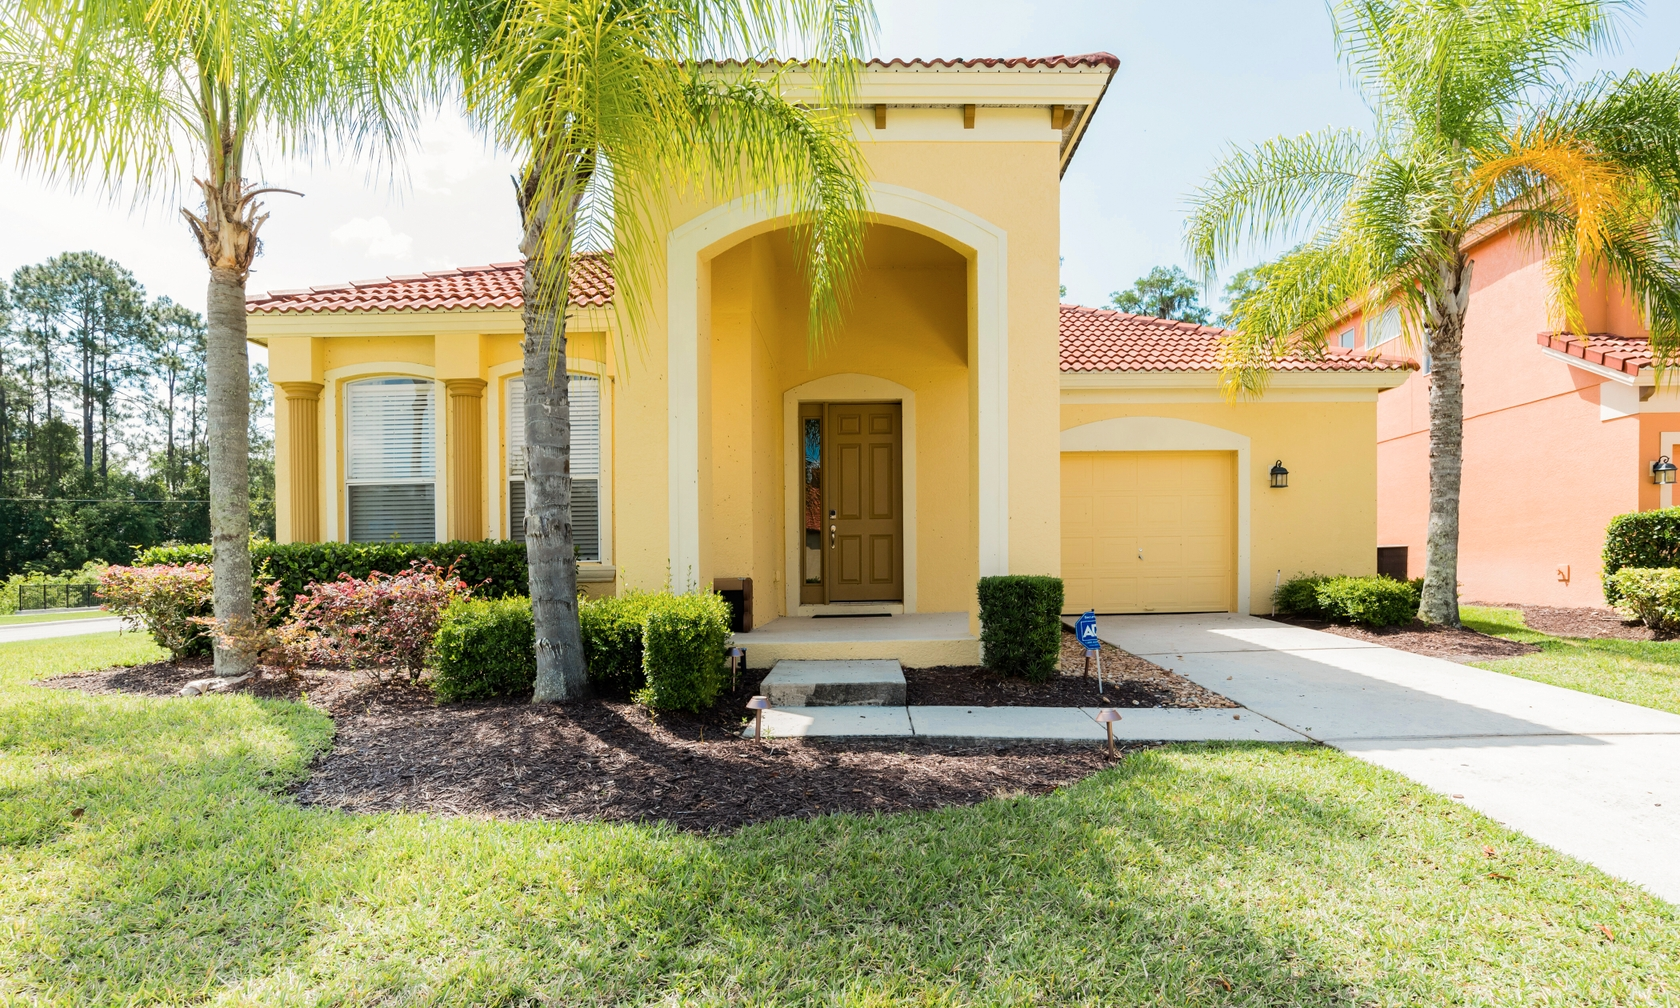 Villa and house rentals in Kissimmee